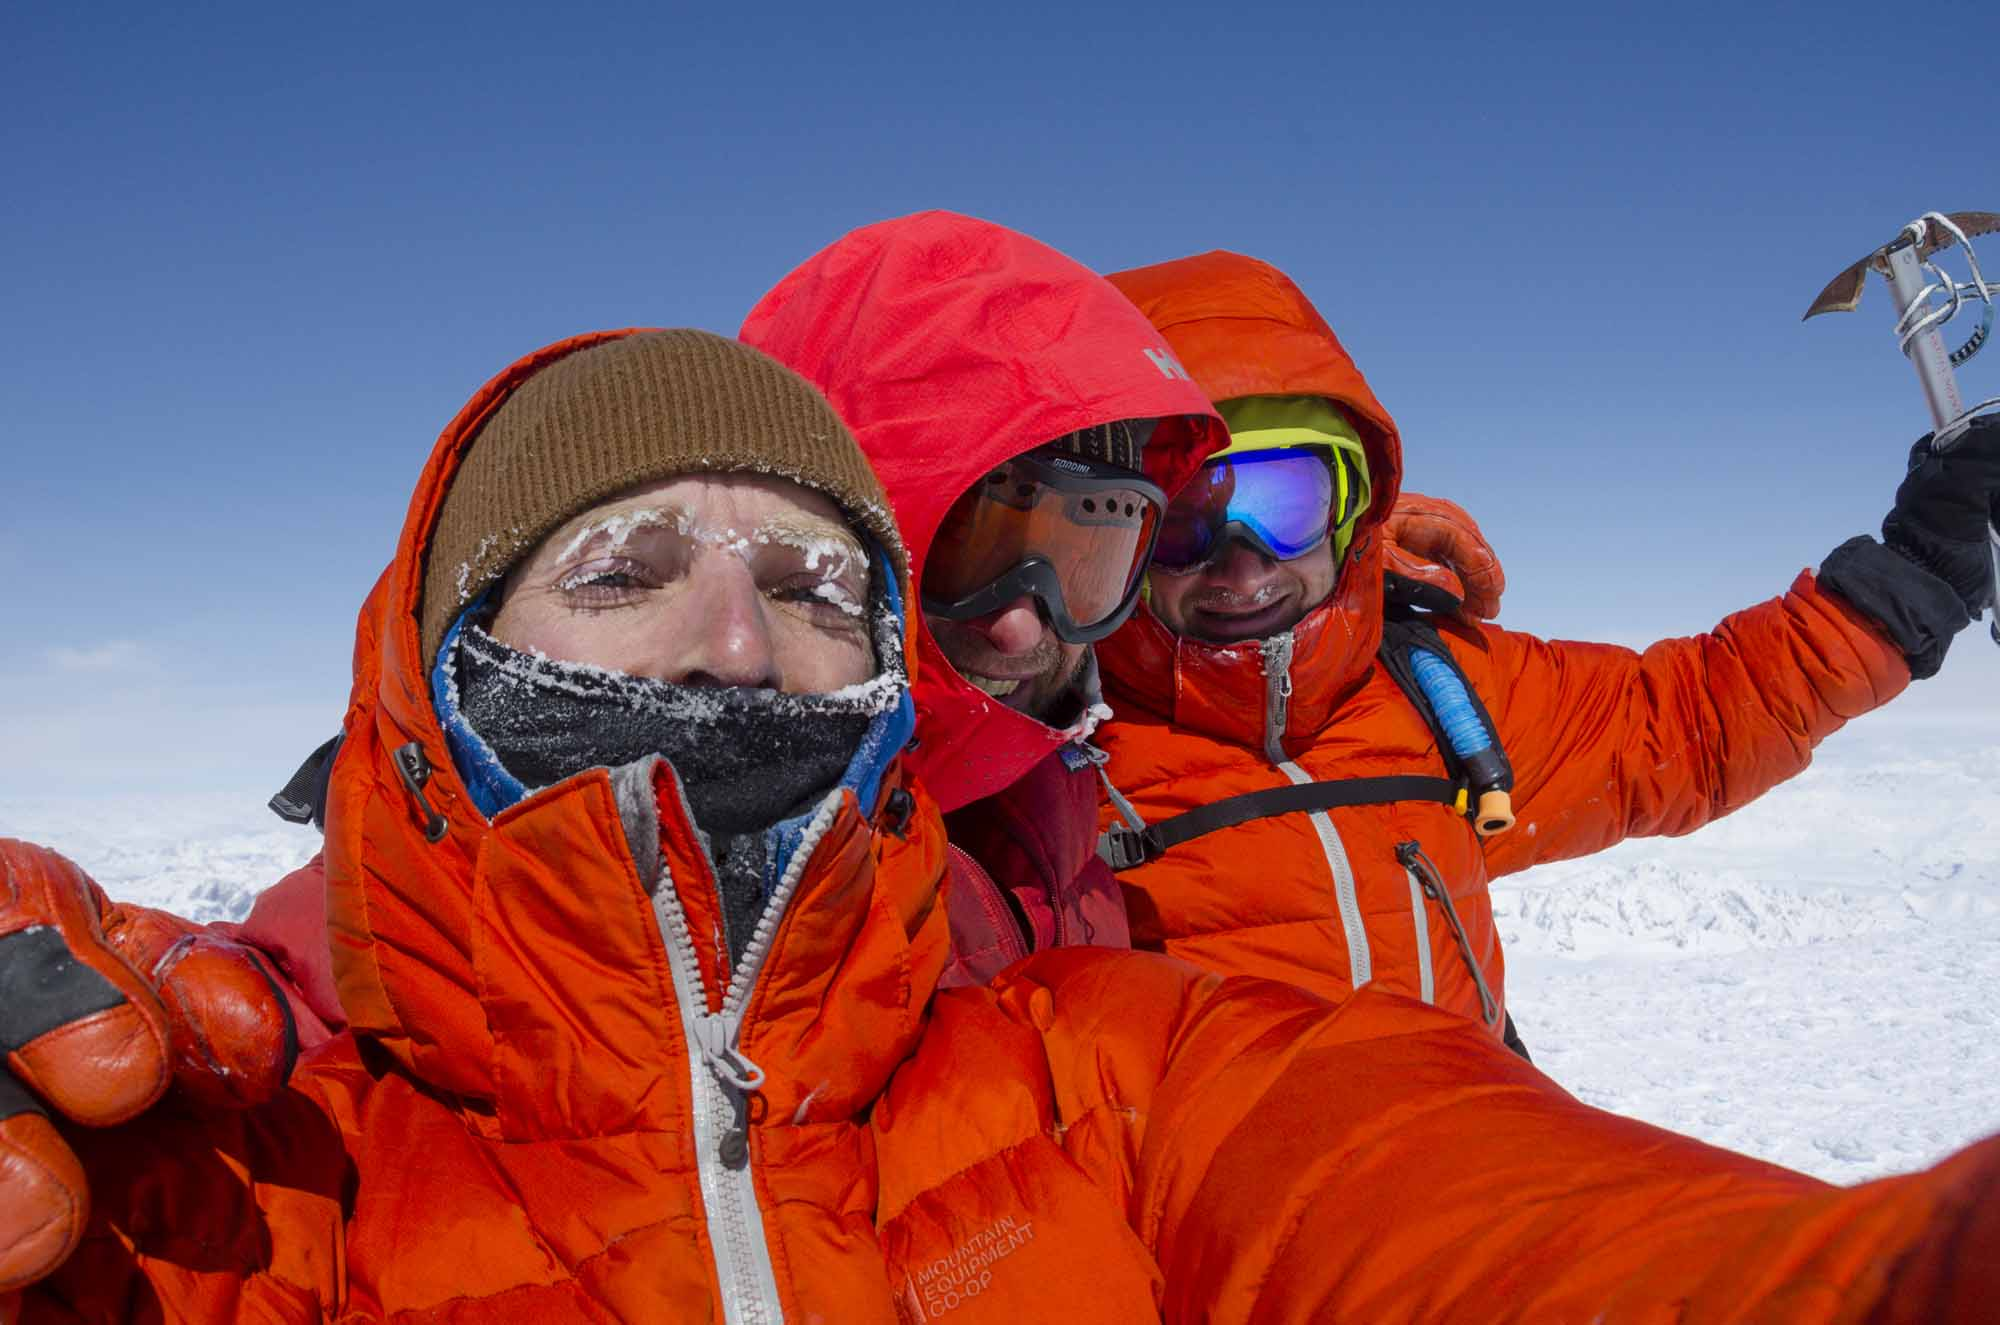 Mount-Not-So-Fairweather-selfie-red-jackets-photo-by-Steve-Ogle